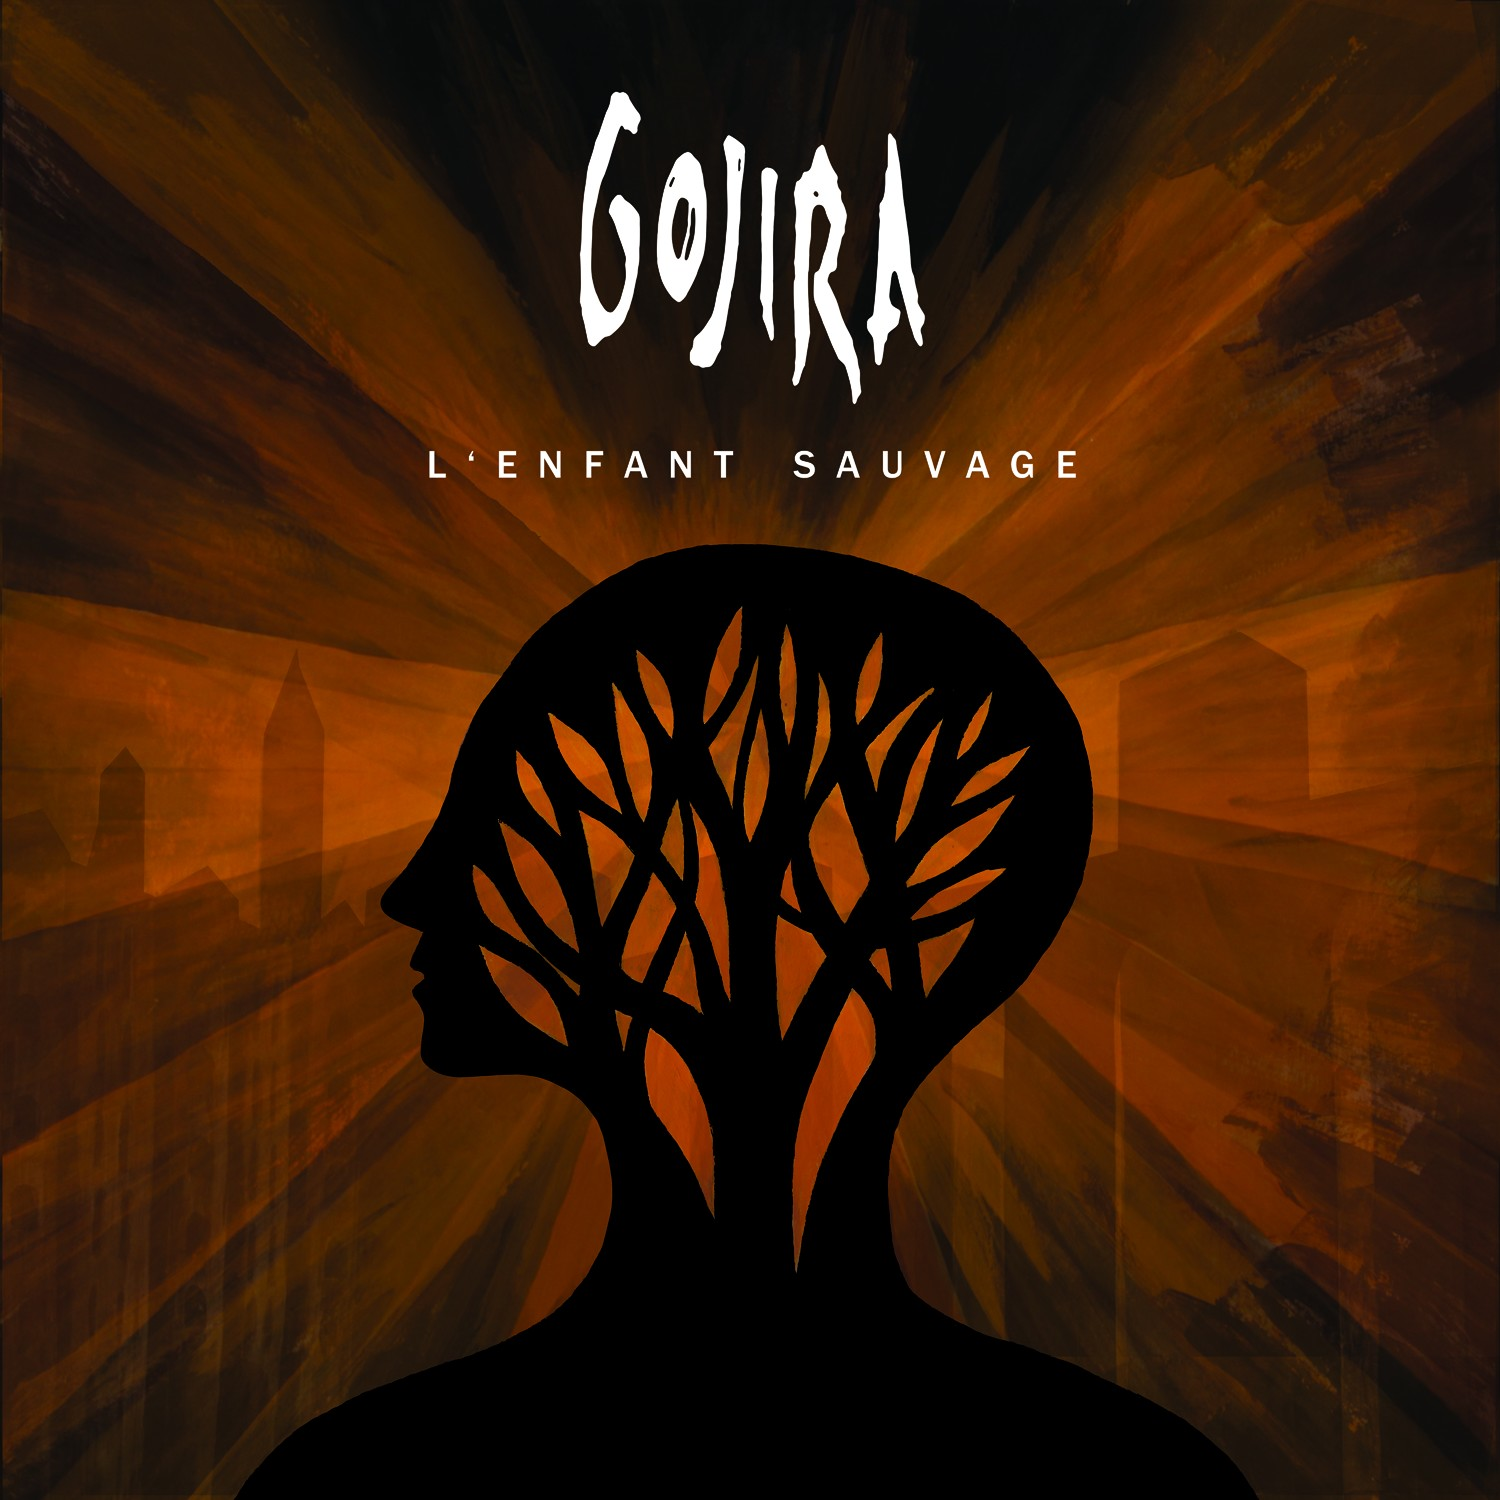 Gojira - L'Enfant Sauvage Review | Angry Metal Guy